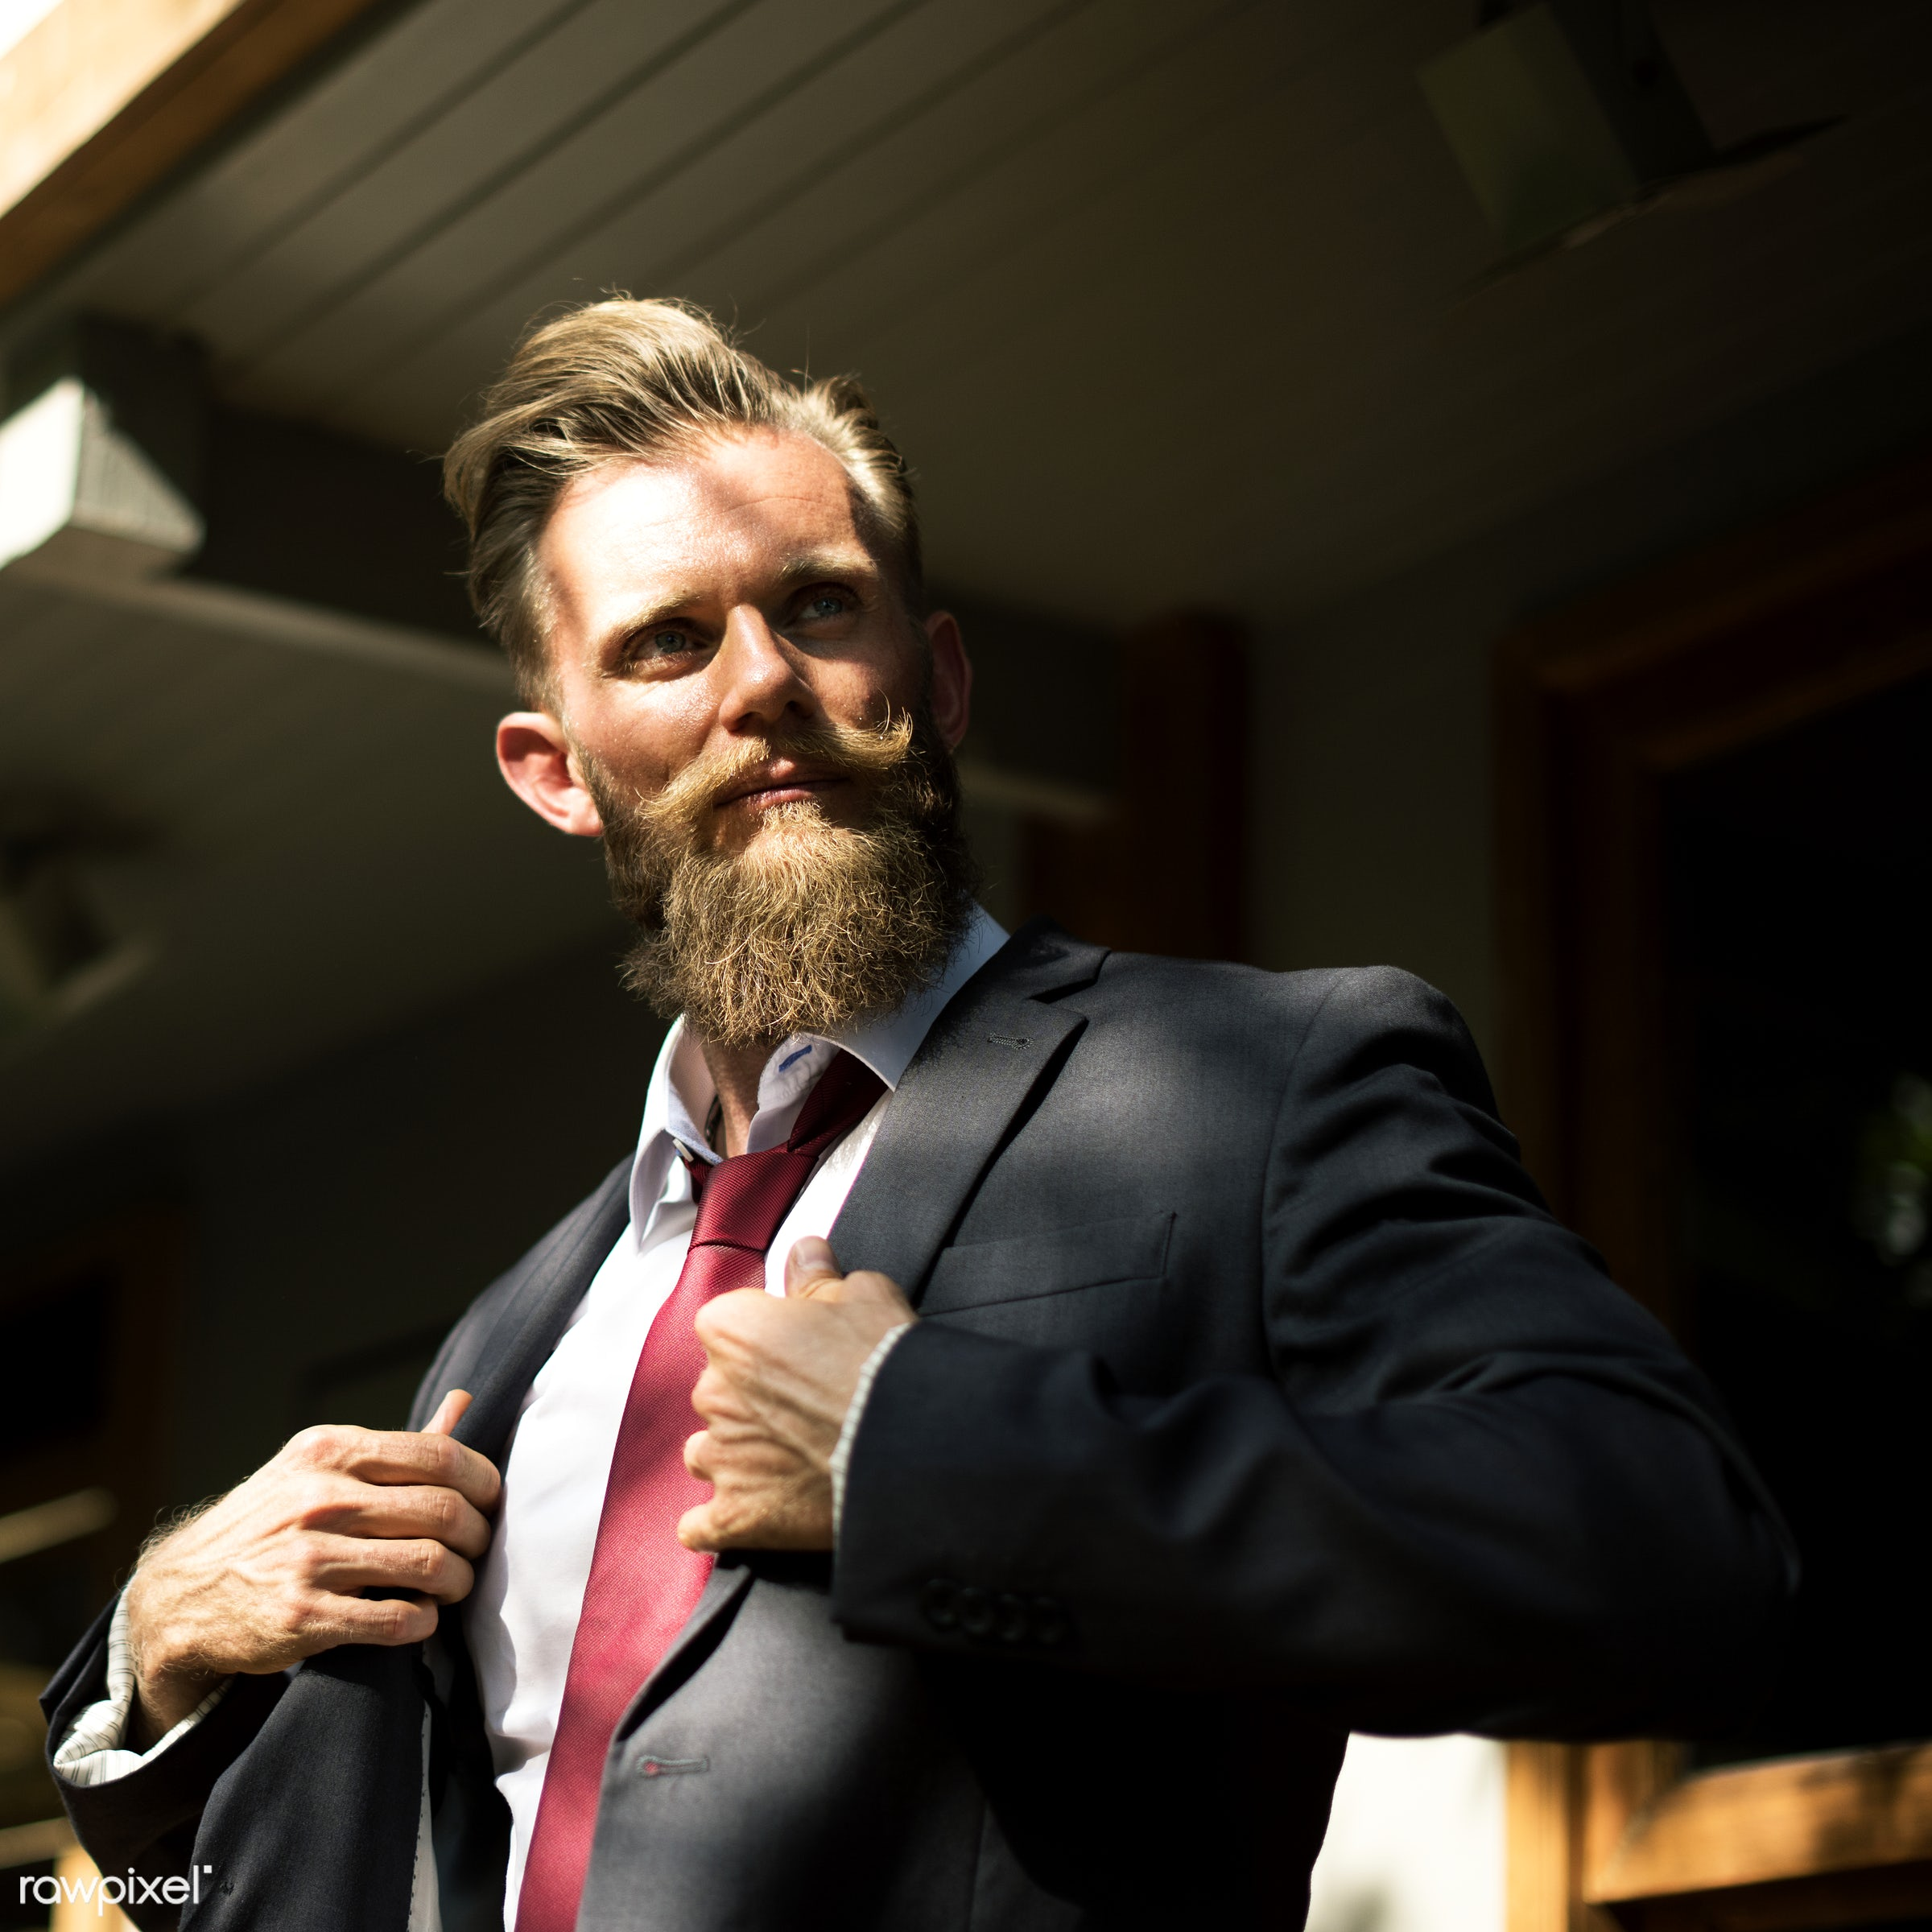 Confident businessman - cc0, beard, boldness, business, confidence, corporate, courage, creative common 0, creative commons...